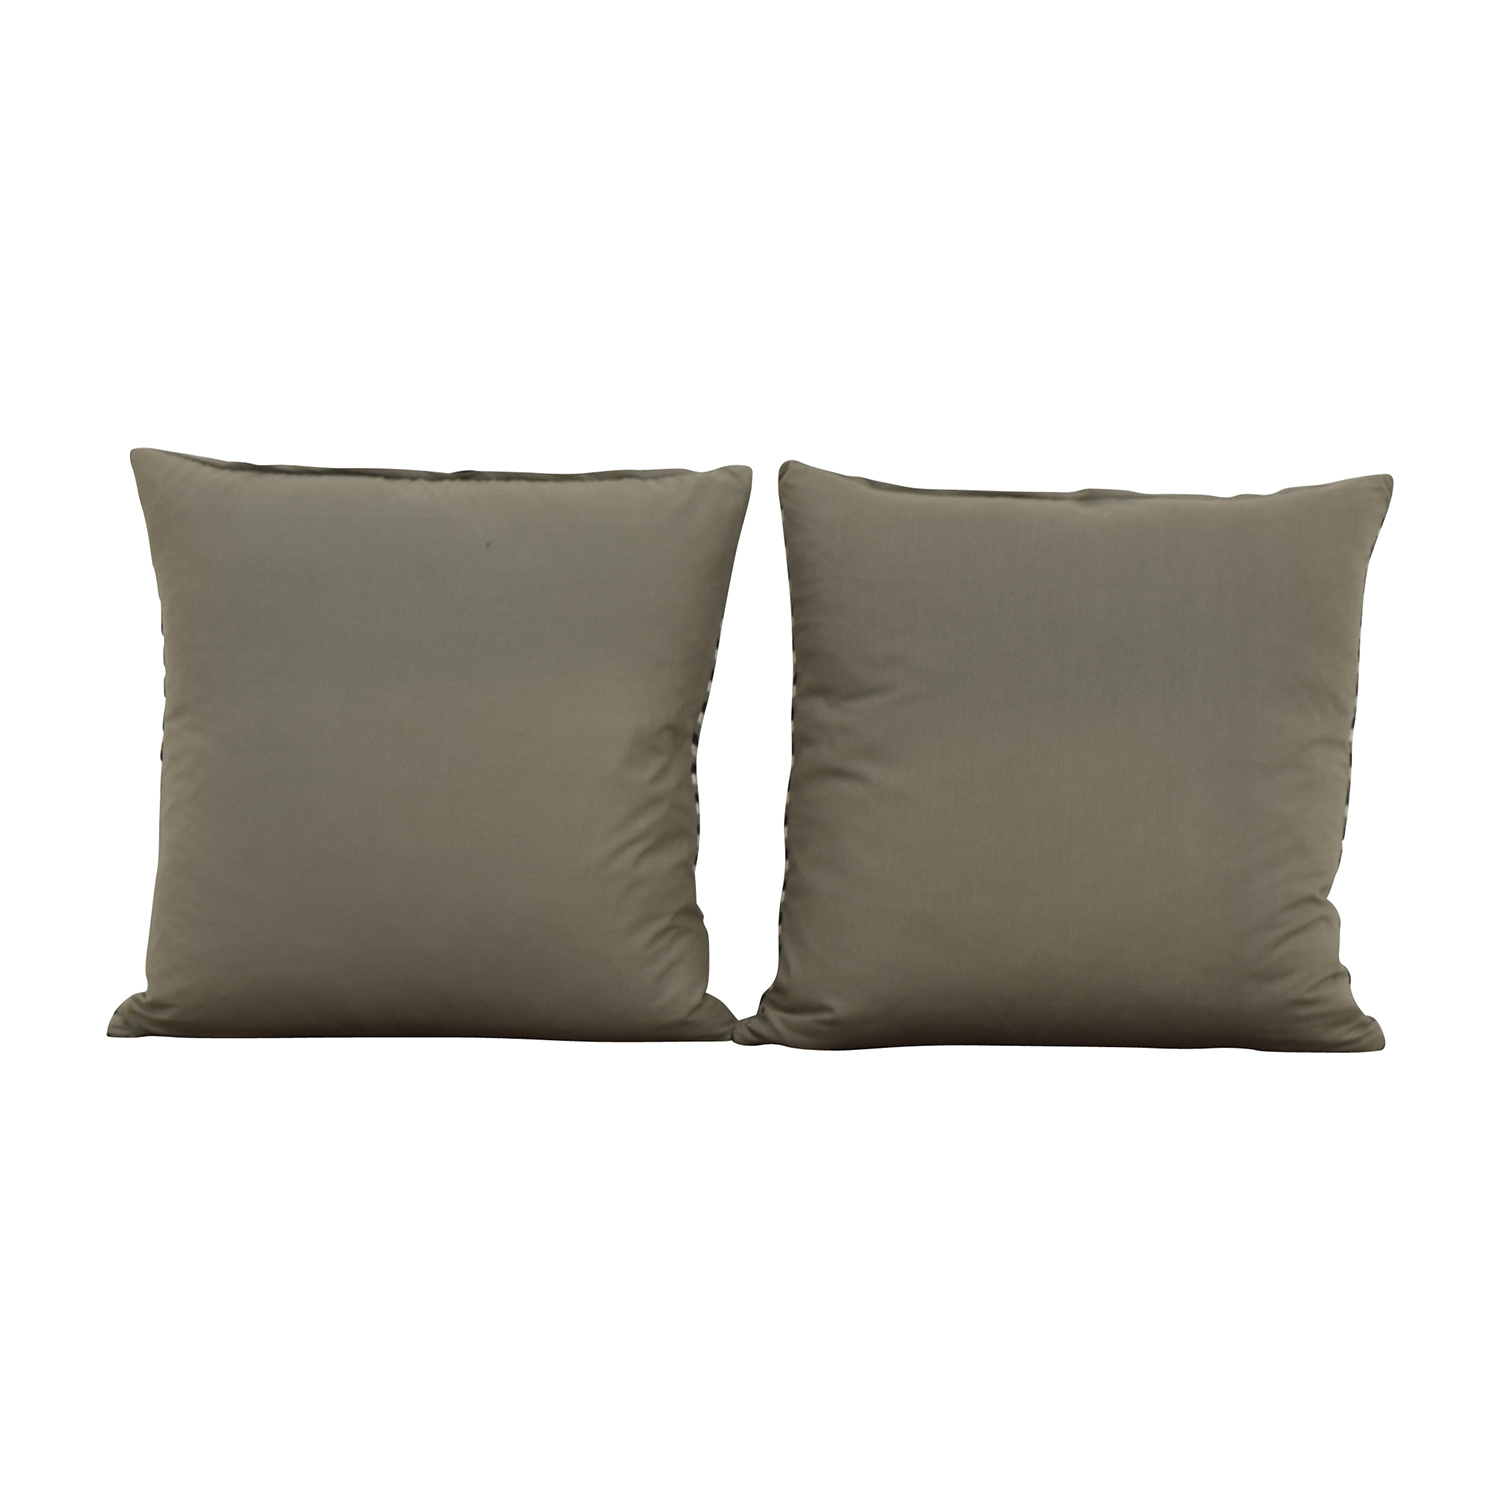 Striped Black Cream and Grey Toss Pillows used